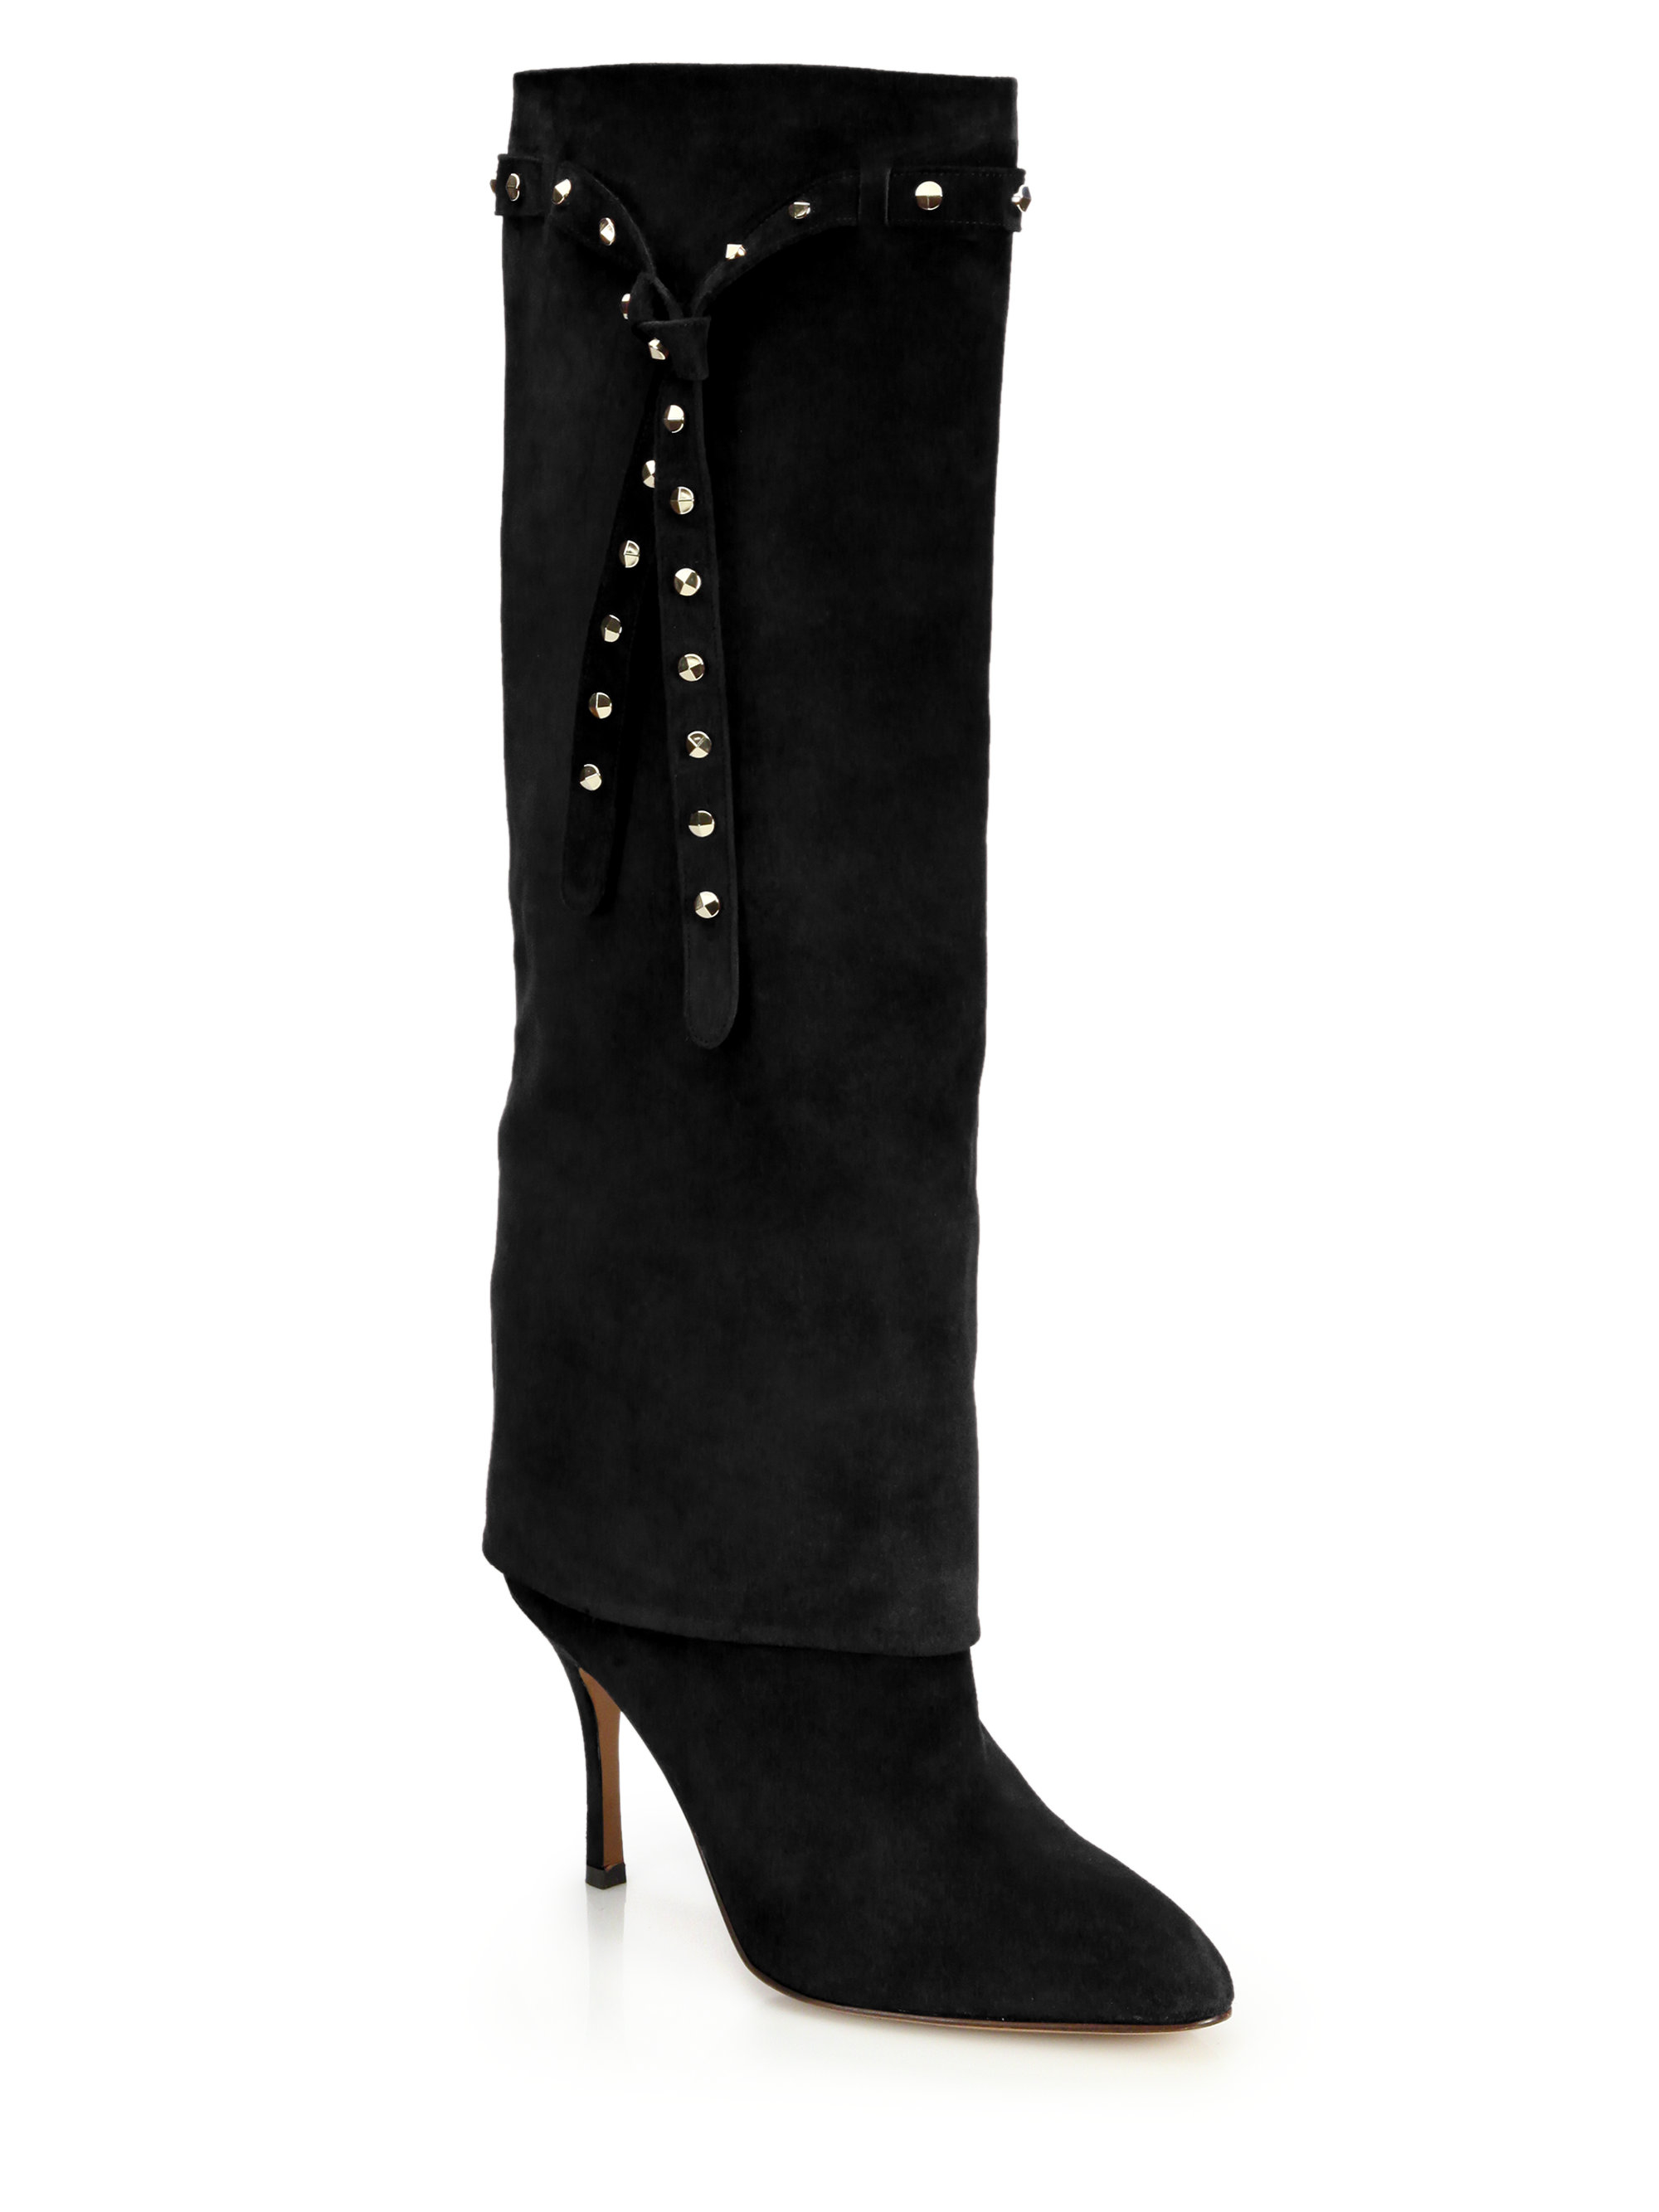 Valentino105MM BOOTSTUDS SLOUCHY SUEDE BOOTS F7xJF